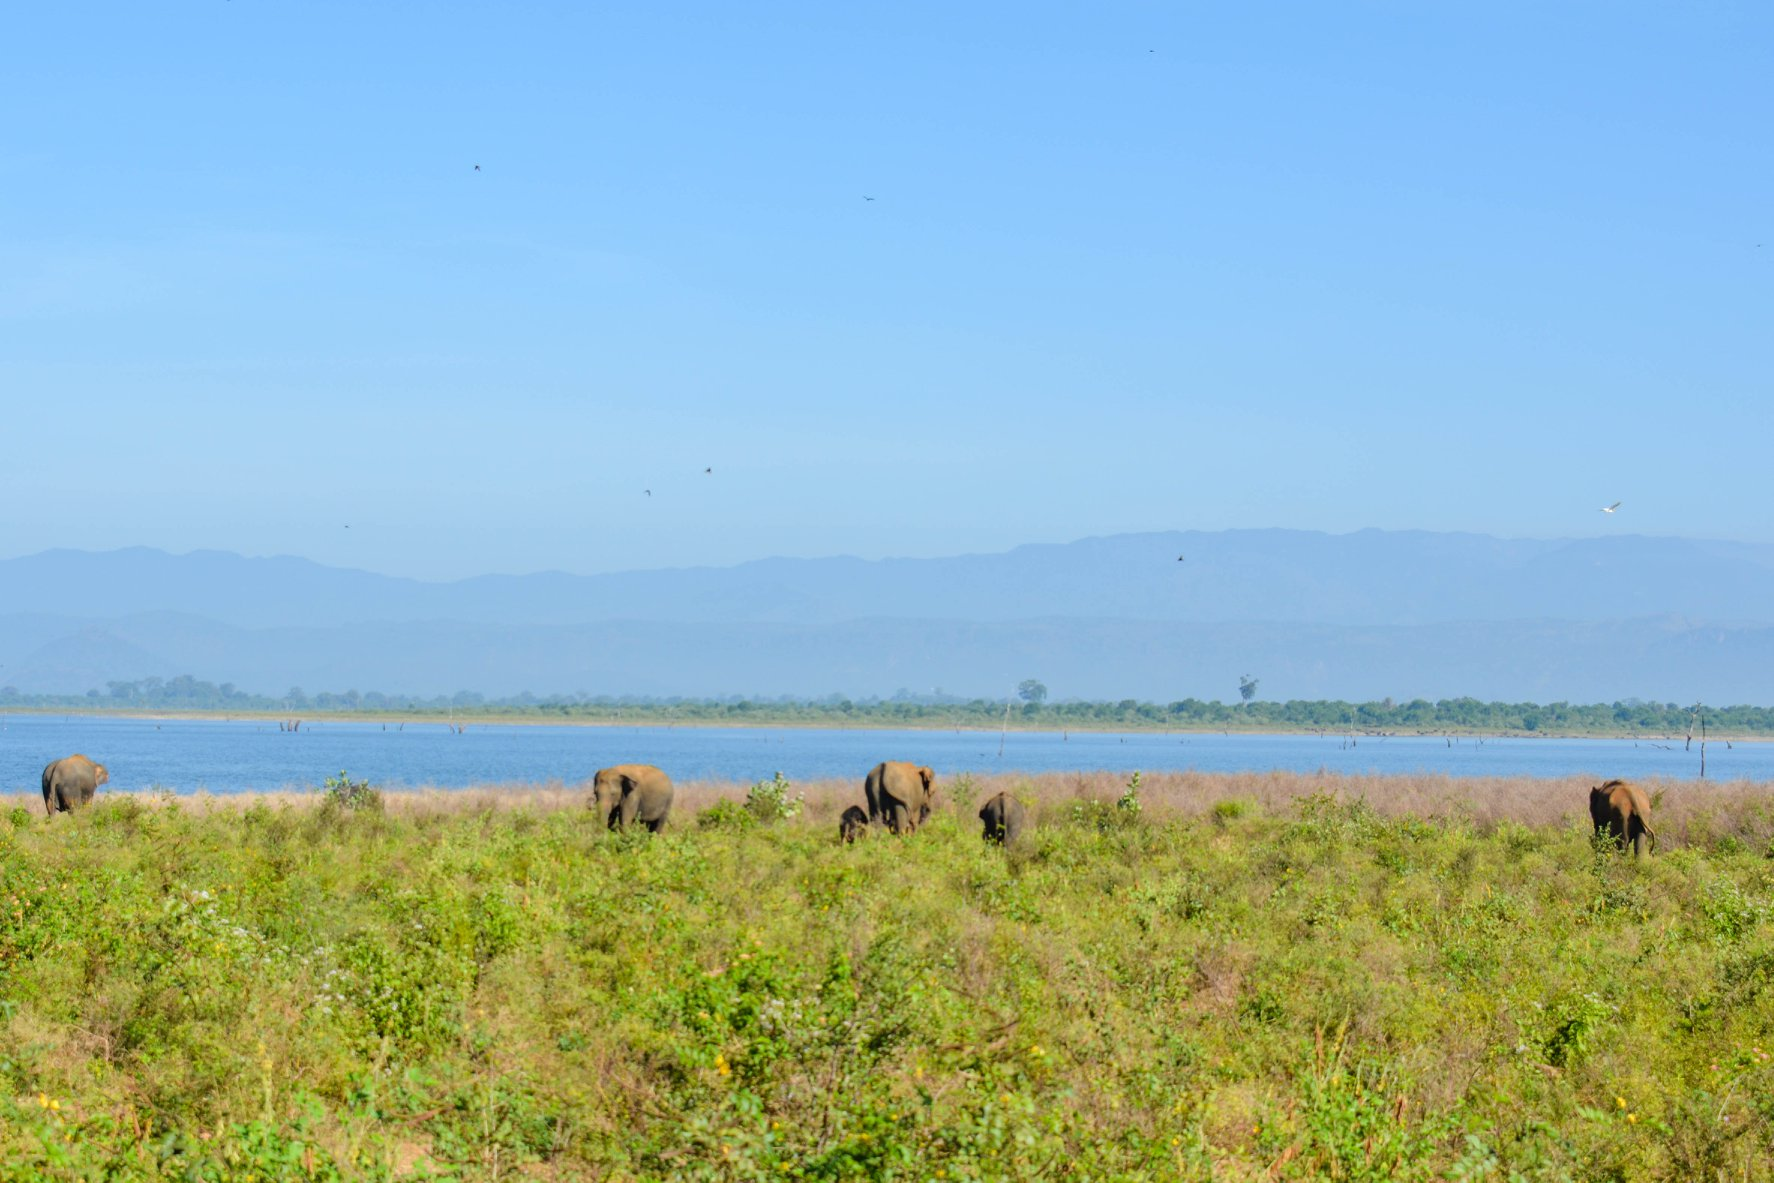 Elephants at Udawelawe